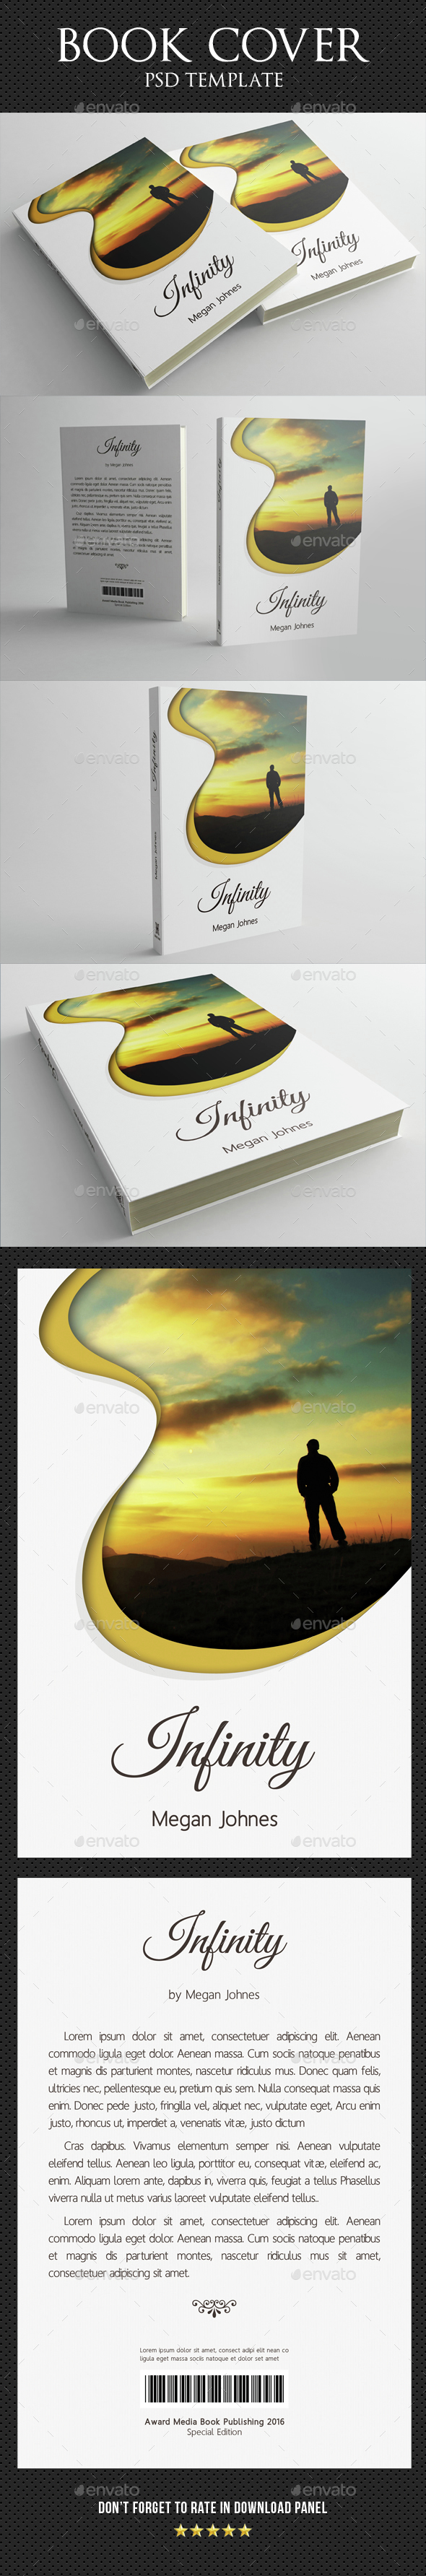 Book Cover Template 05 - Miscellaneous Print Templates